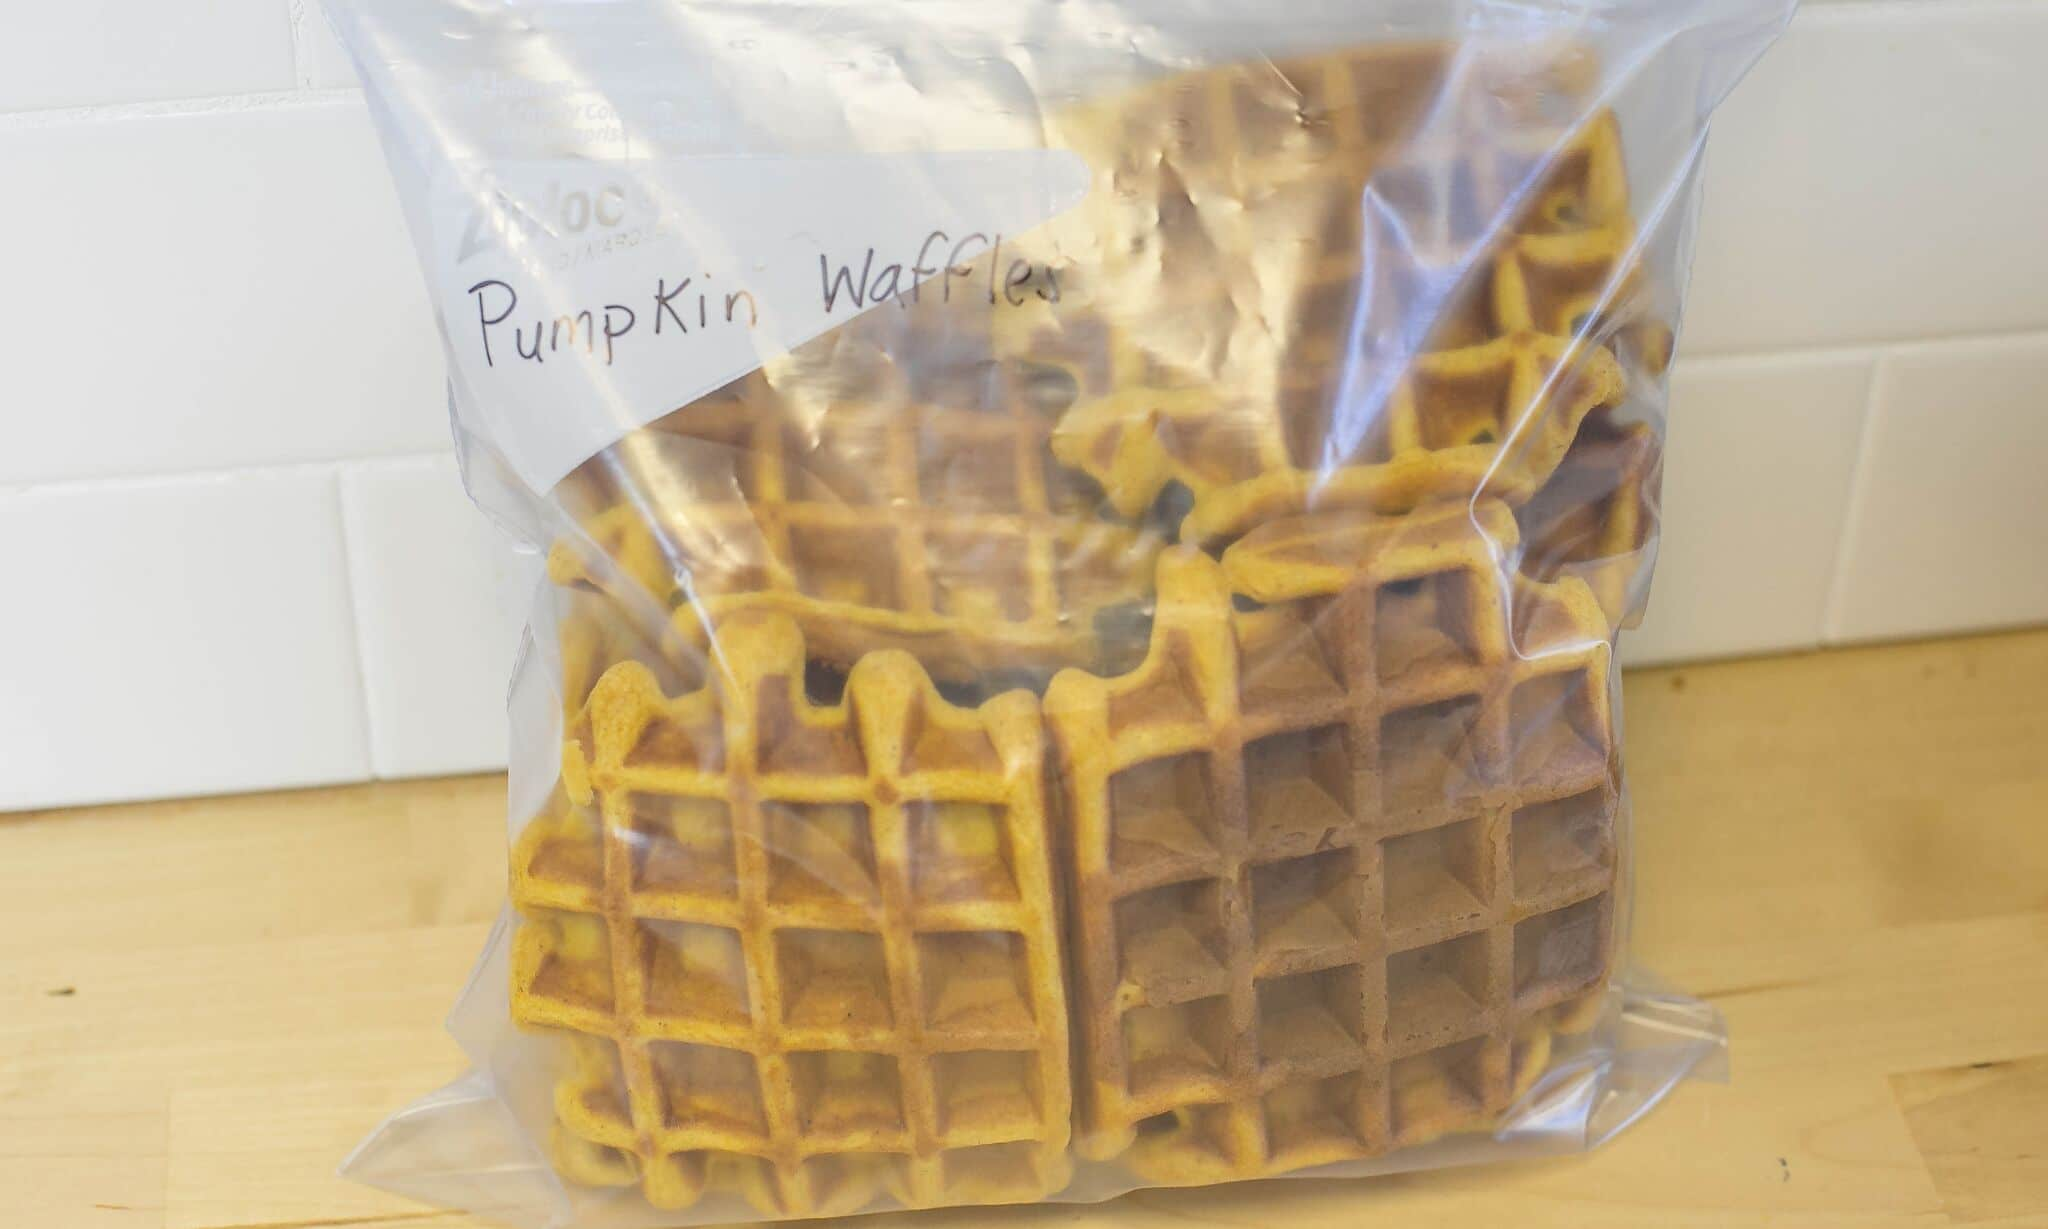 Cool pumpkin waffles then place into freezer bag to store.